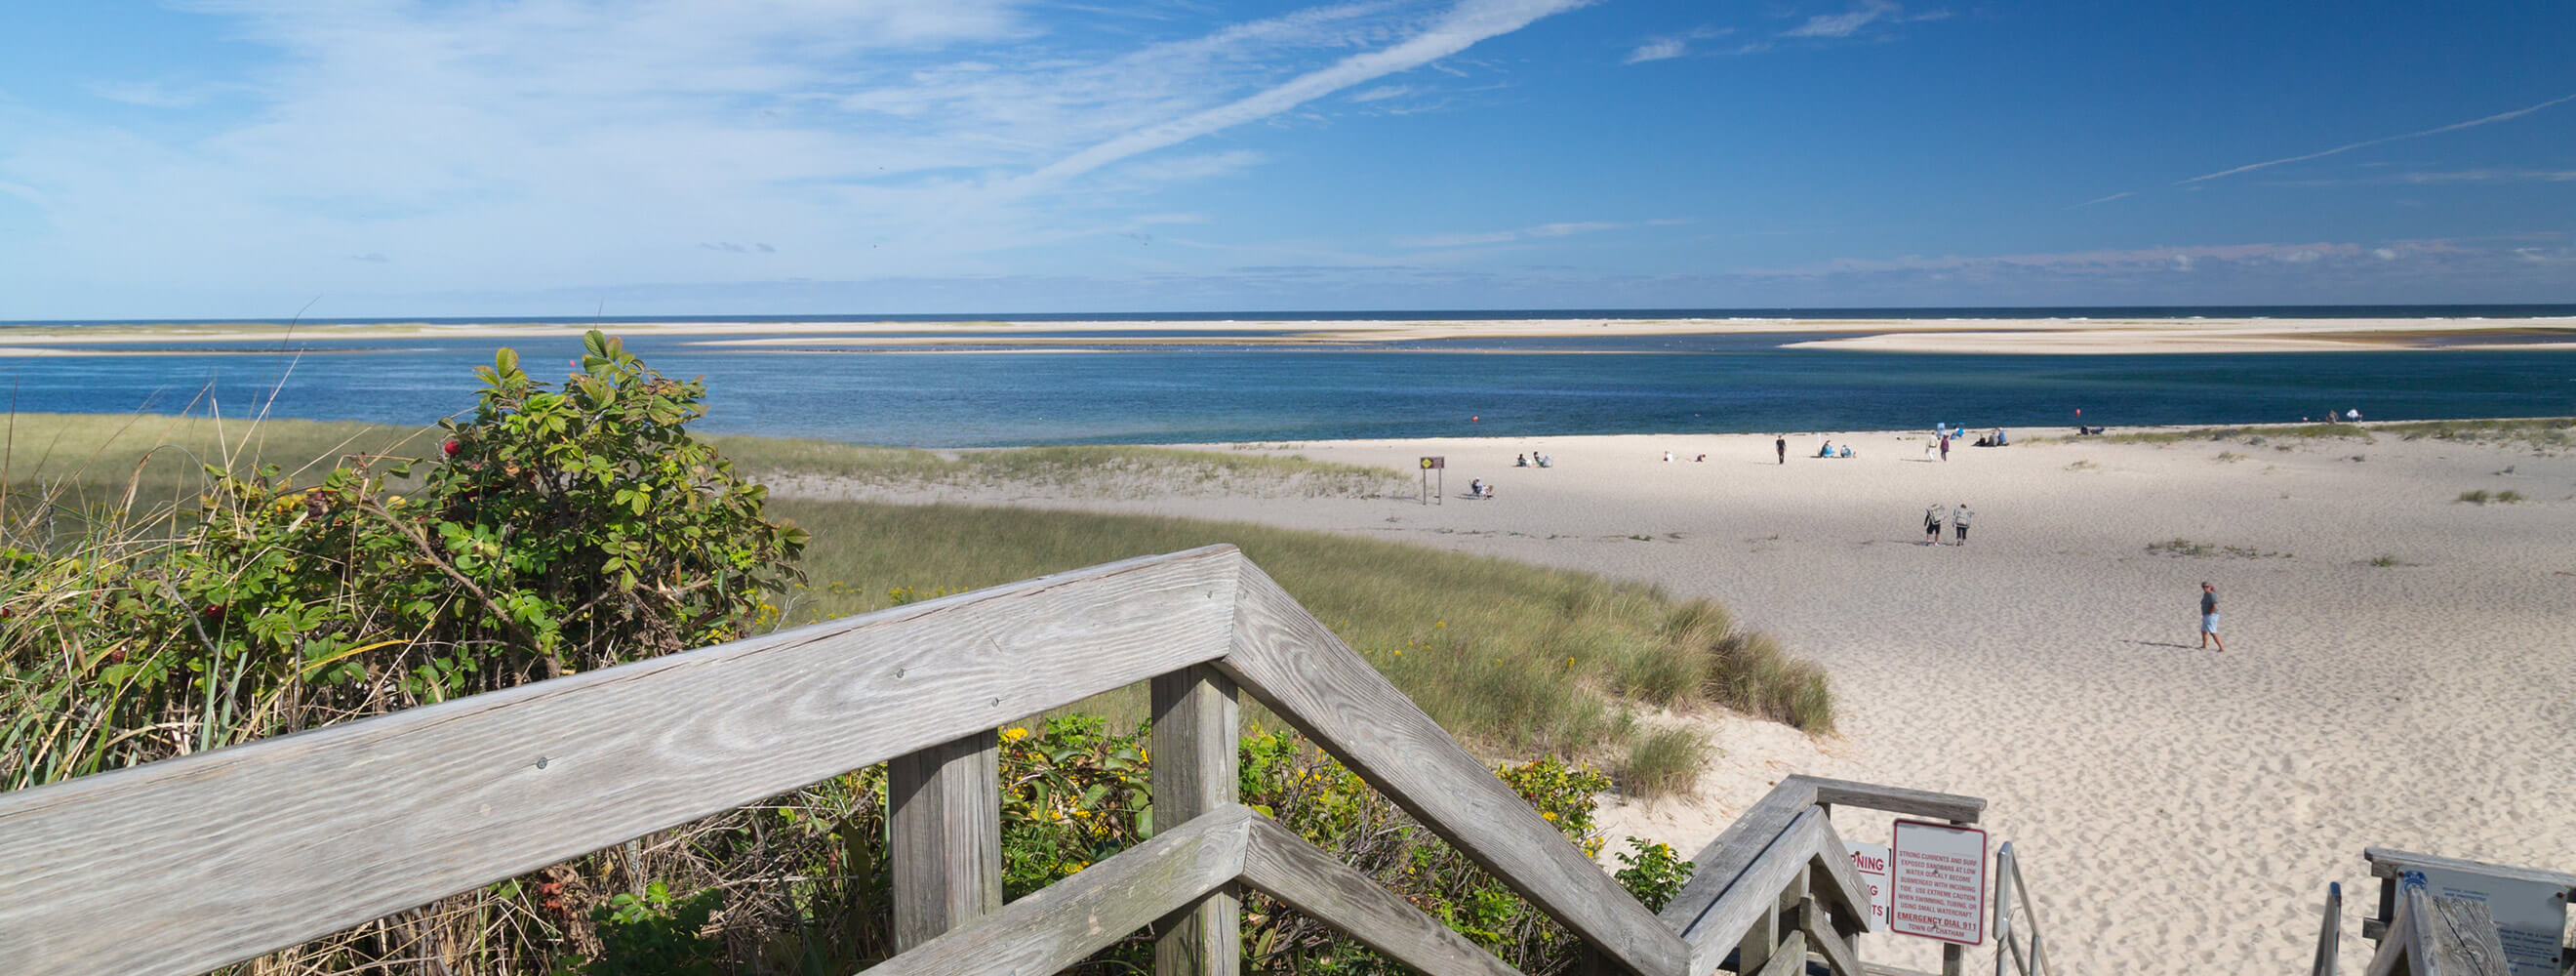 Cape Cod - beach access